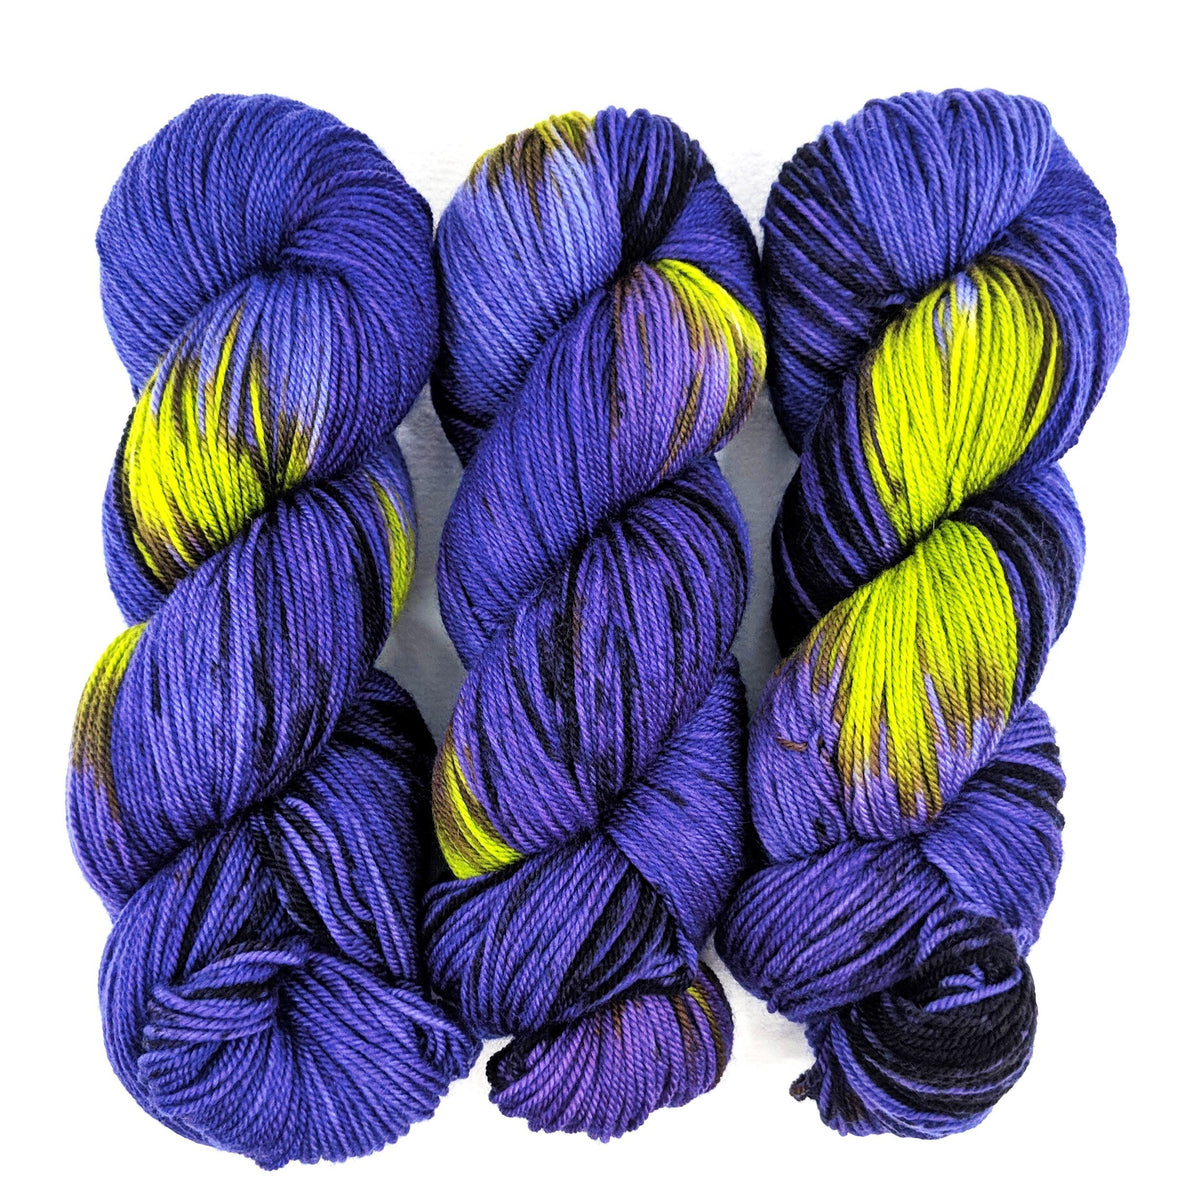 Monsters Under the Bed - Socknado Fingering - Dyed Stock